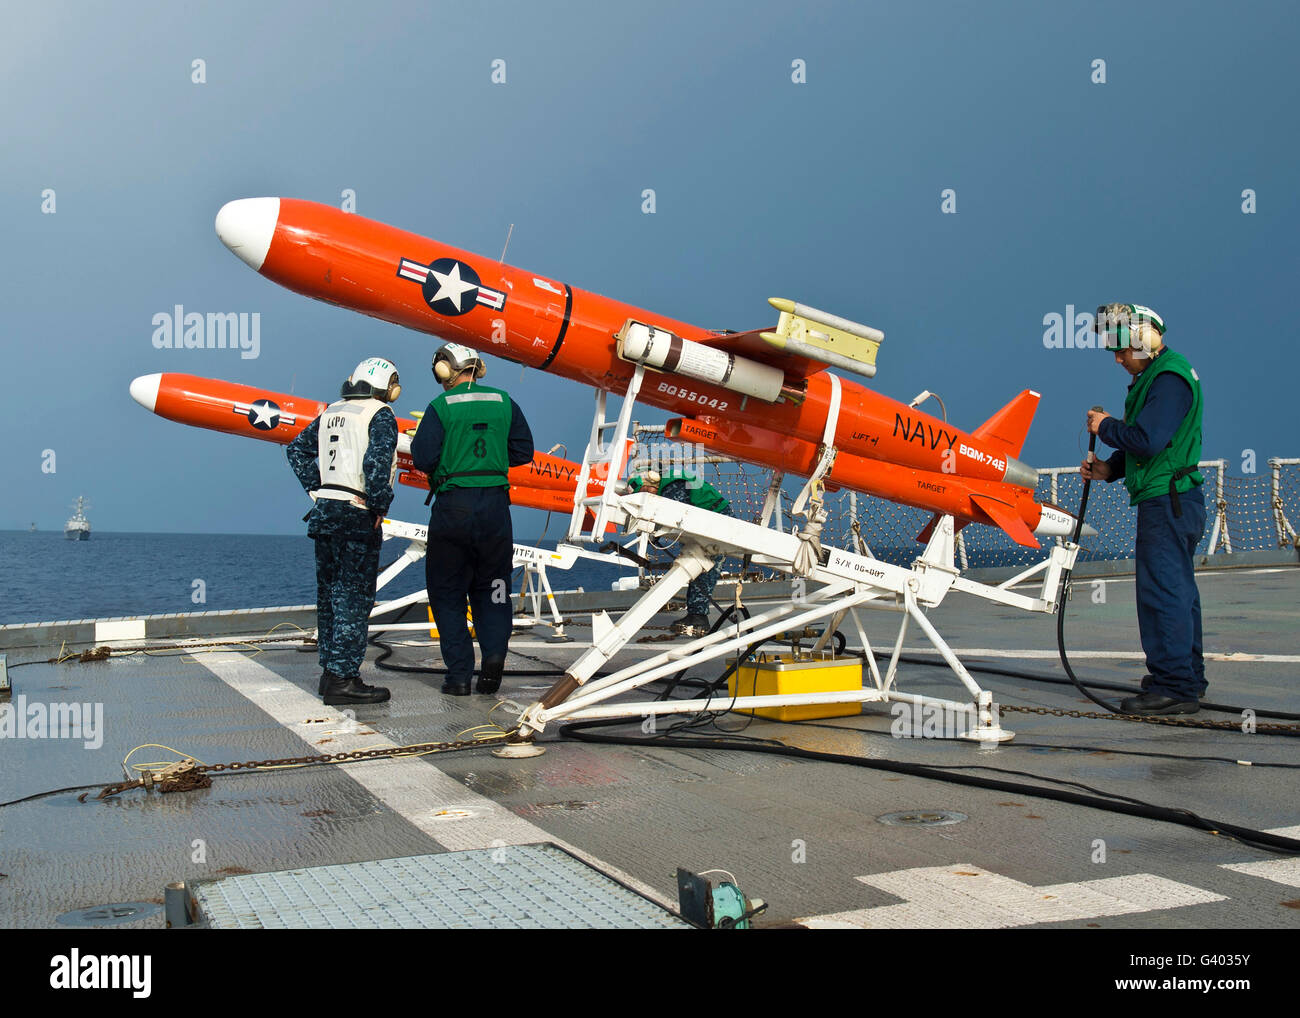 Sailors perform pre-launch checks on a BQM-74 target drone. - Stock Image